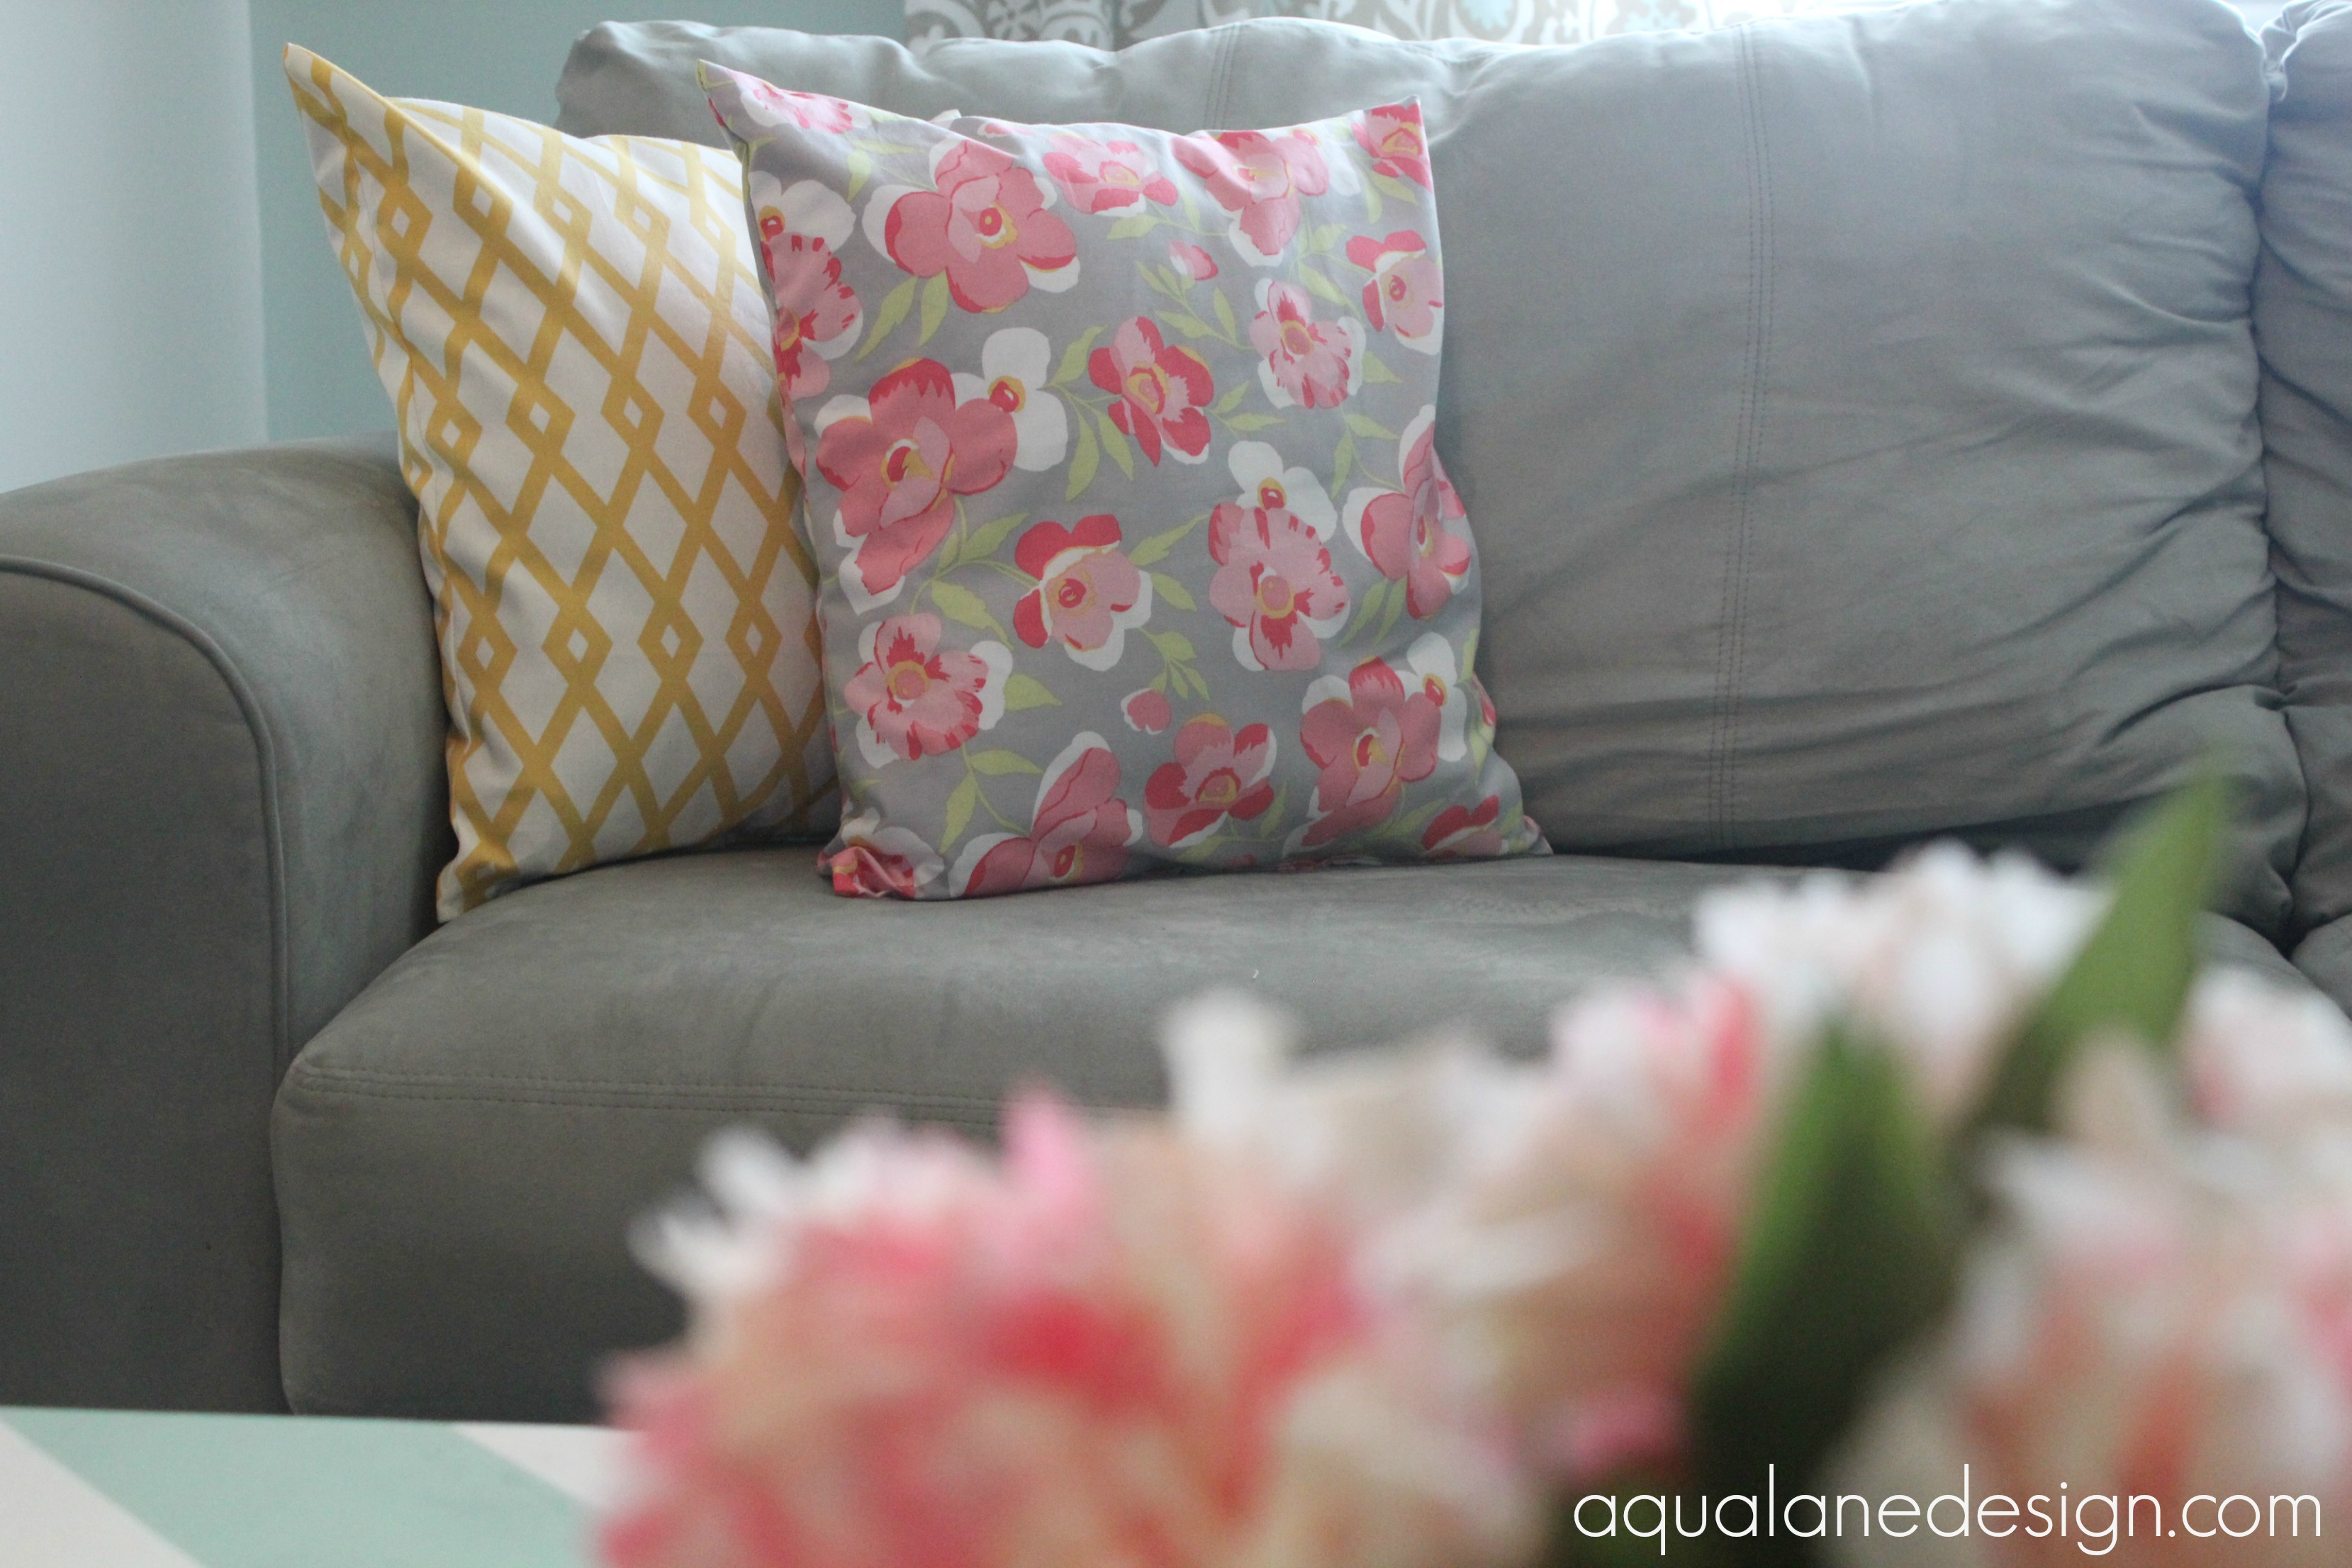 flowers and pillows